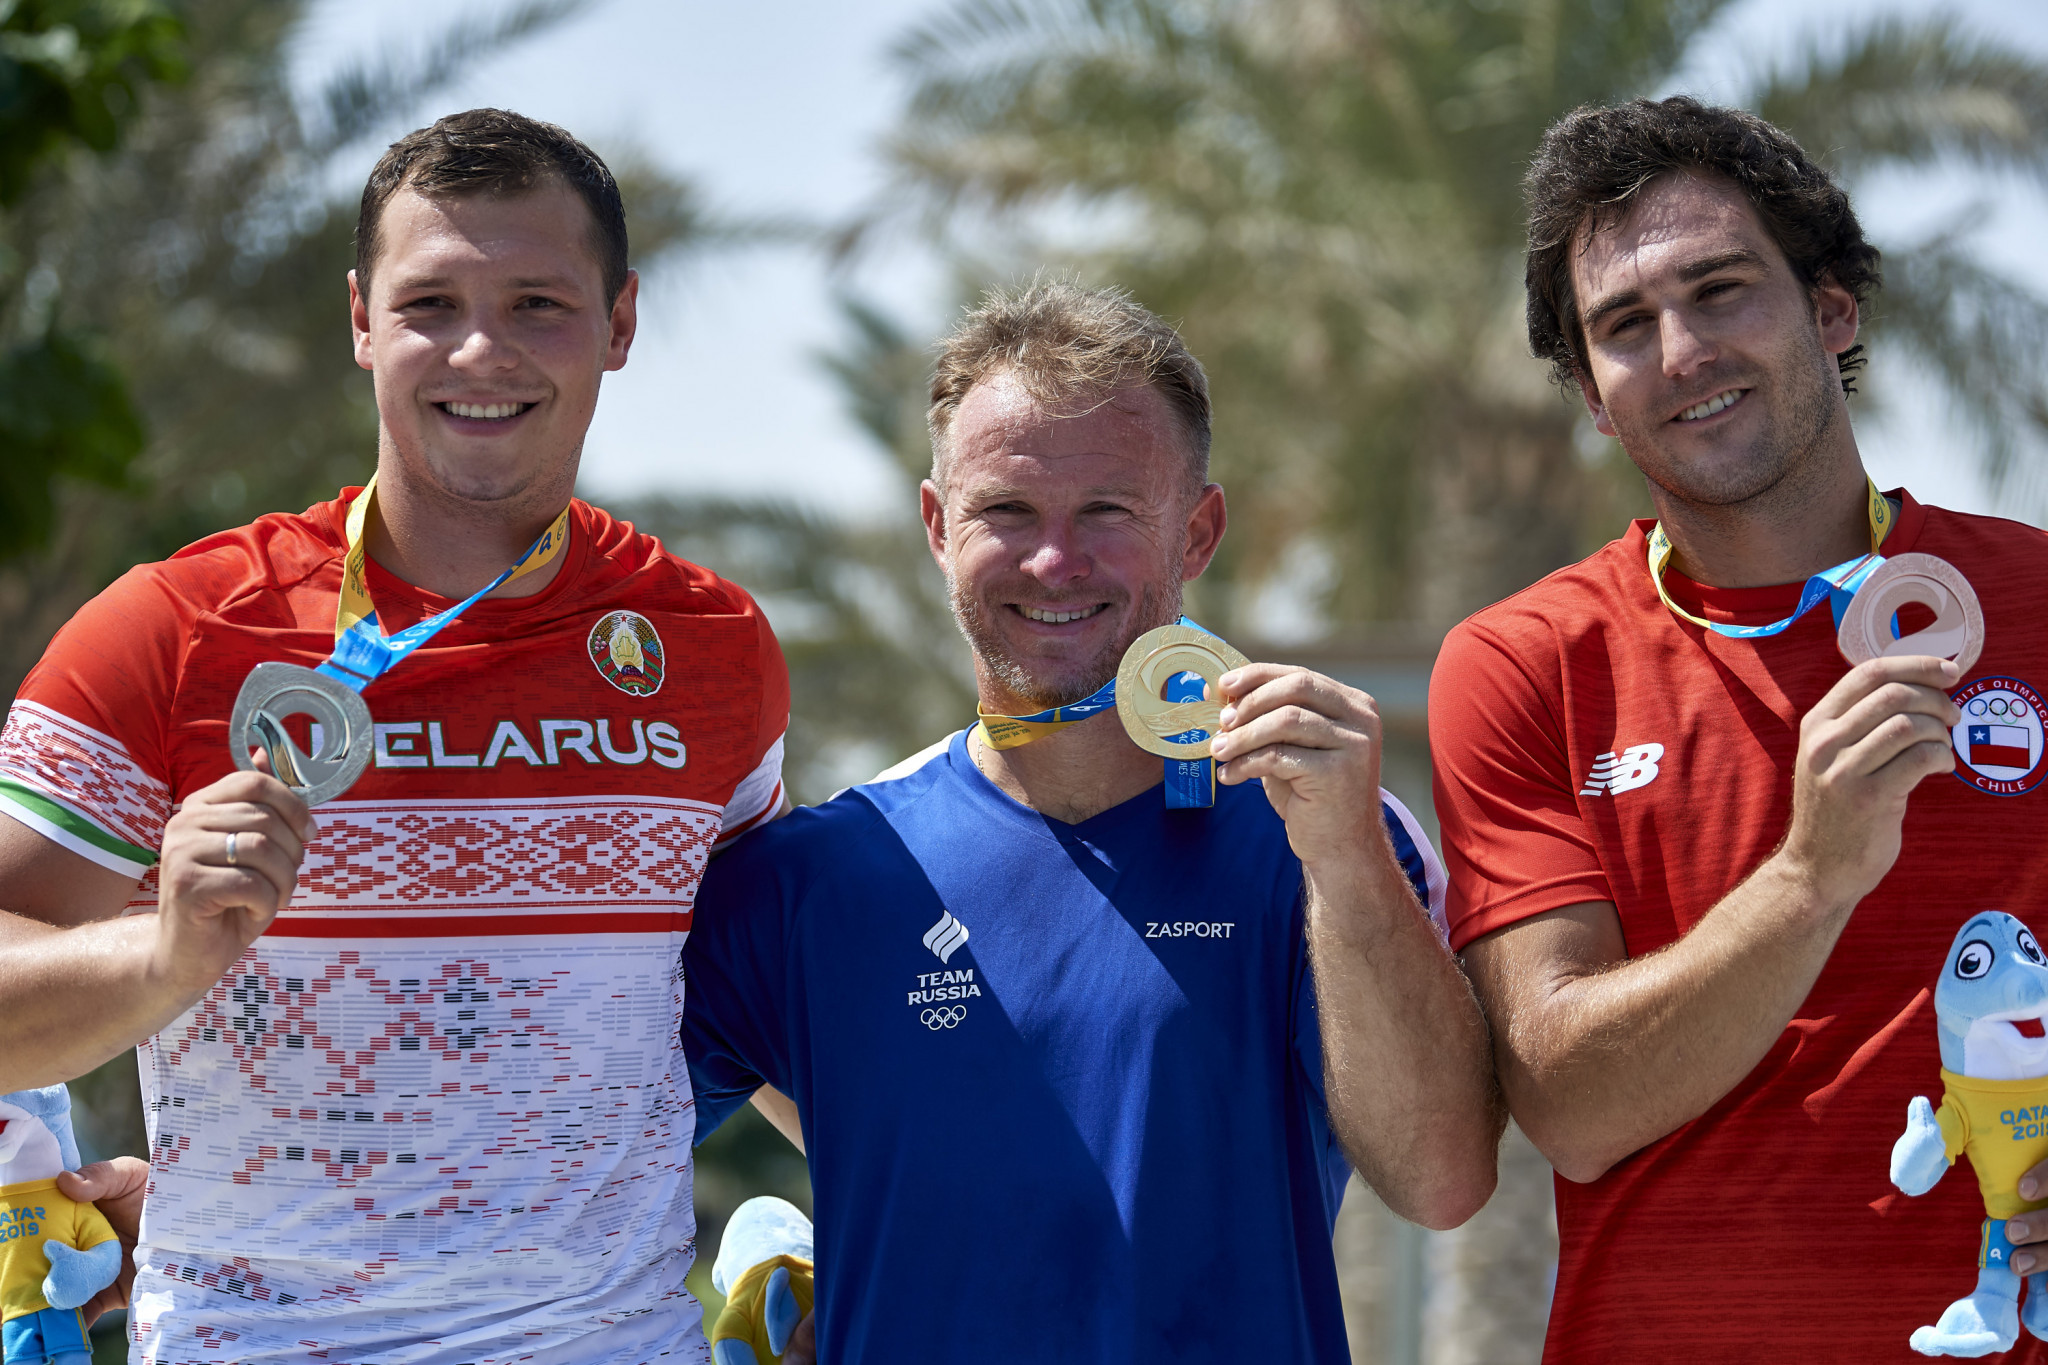 Forty-four-year-old Vladimir Ryanzin won the men's waterski jump for Russia ©ANOC